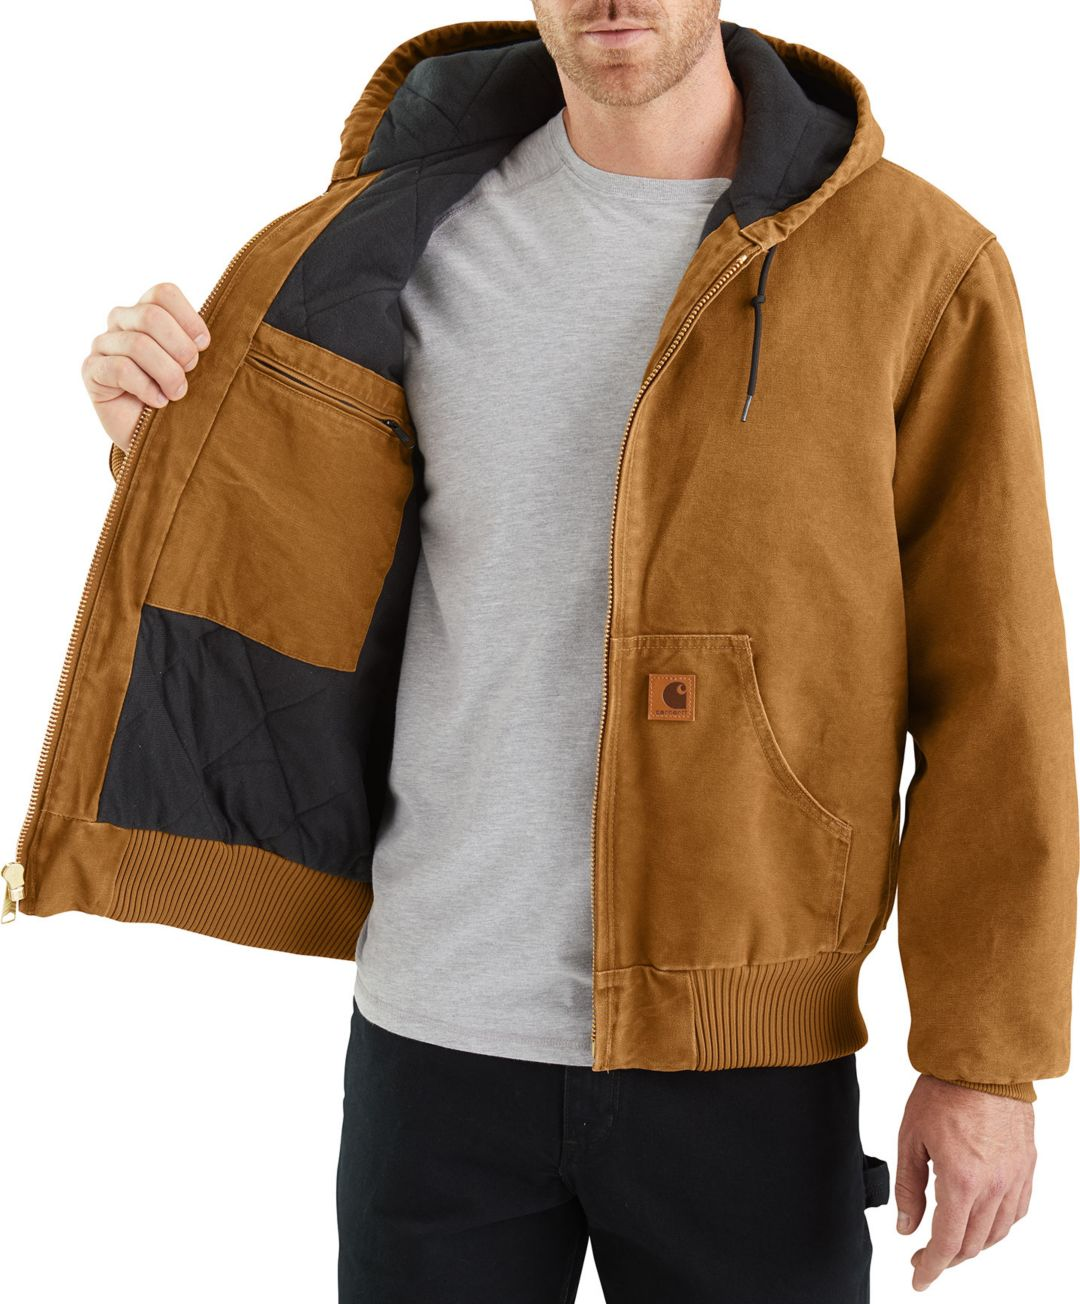 611d5ed1a5589 Carhartt Men's Sandstone Active Lined Jacket | DICK'S Sporting Goods